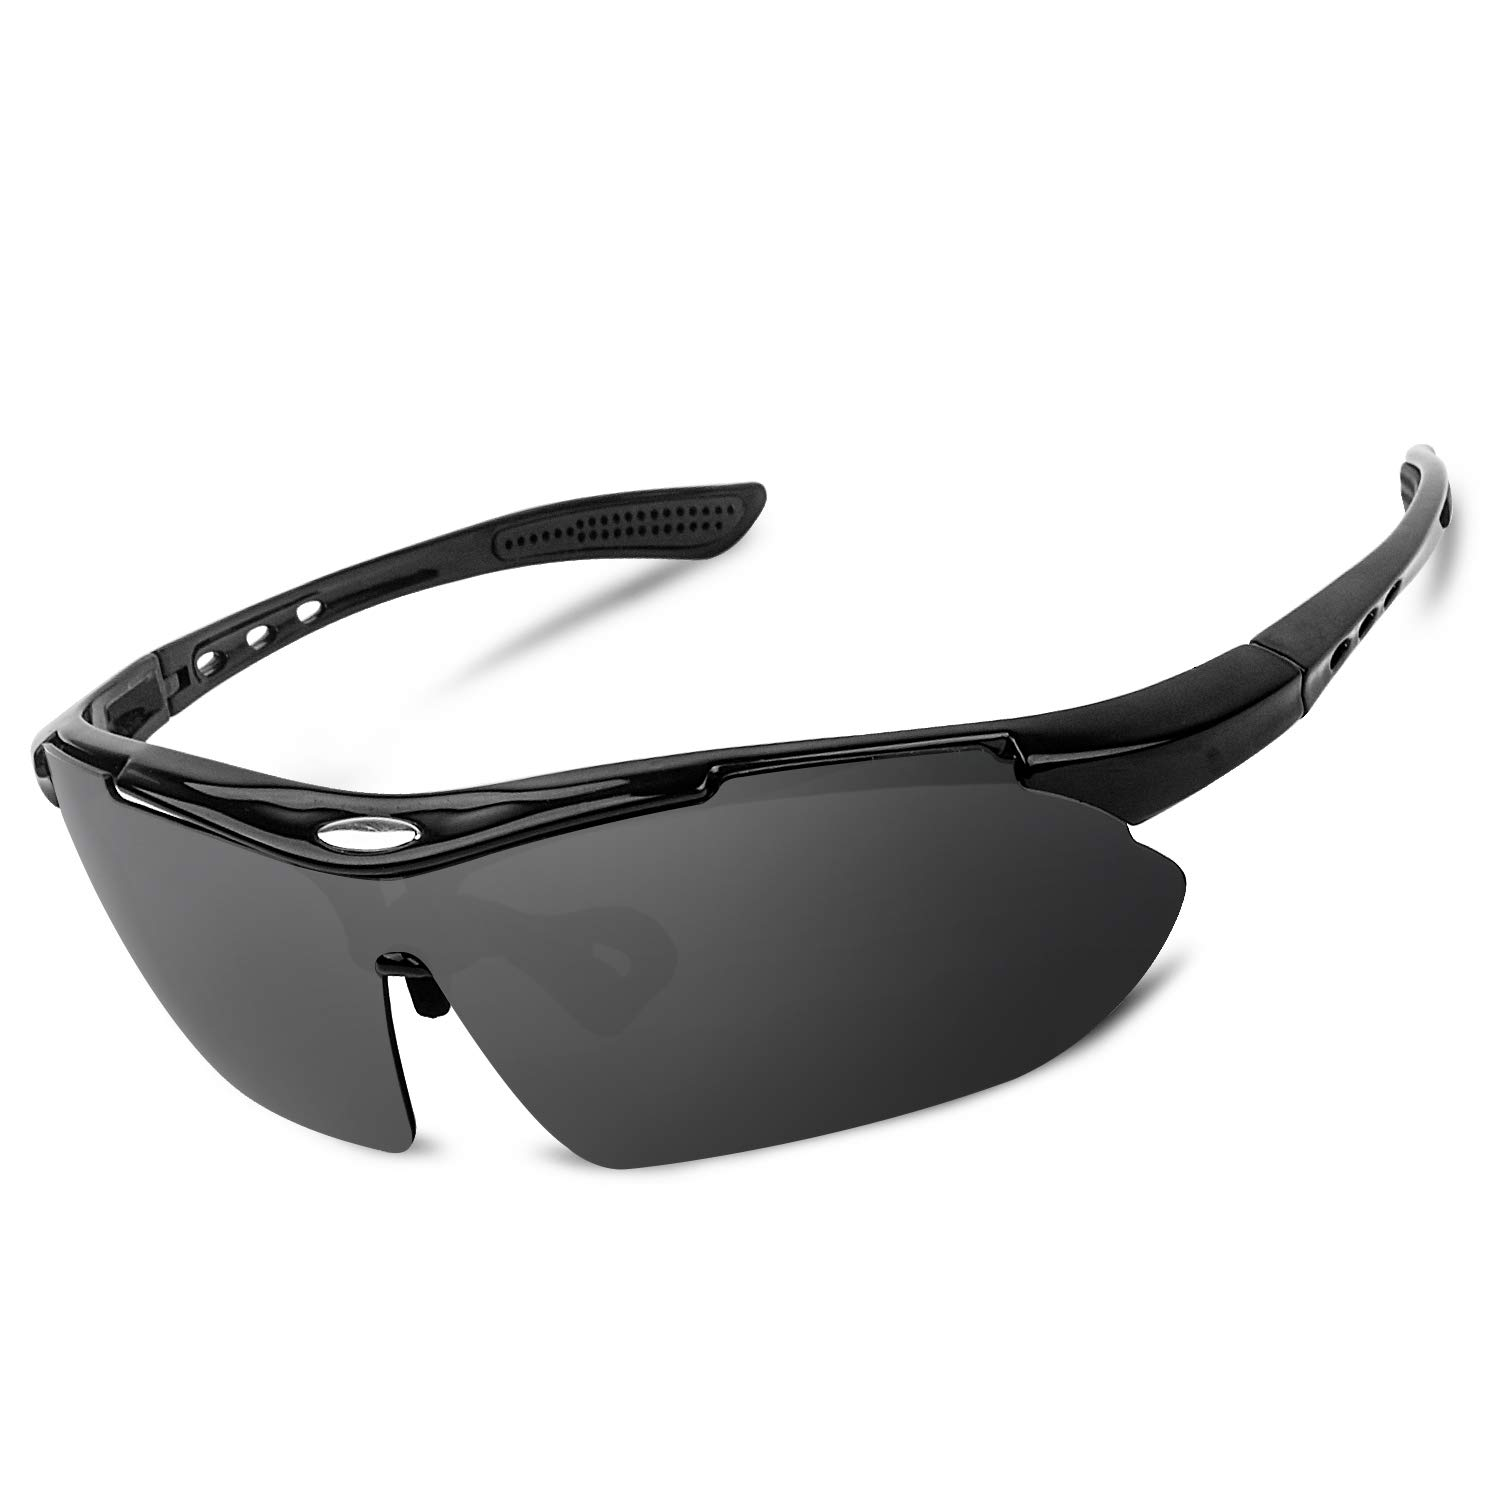 GGBuy Polarized Sport Sunglasses 100 UV Protection Anti-Glare Lightweight Frame Glasses for Women Men Outdoor Active Cycling Running Driving Riding Fishing